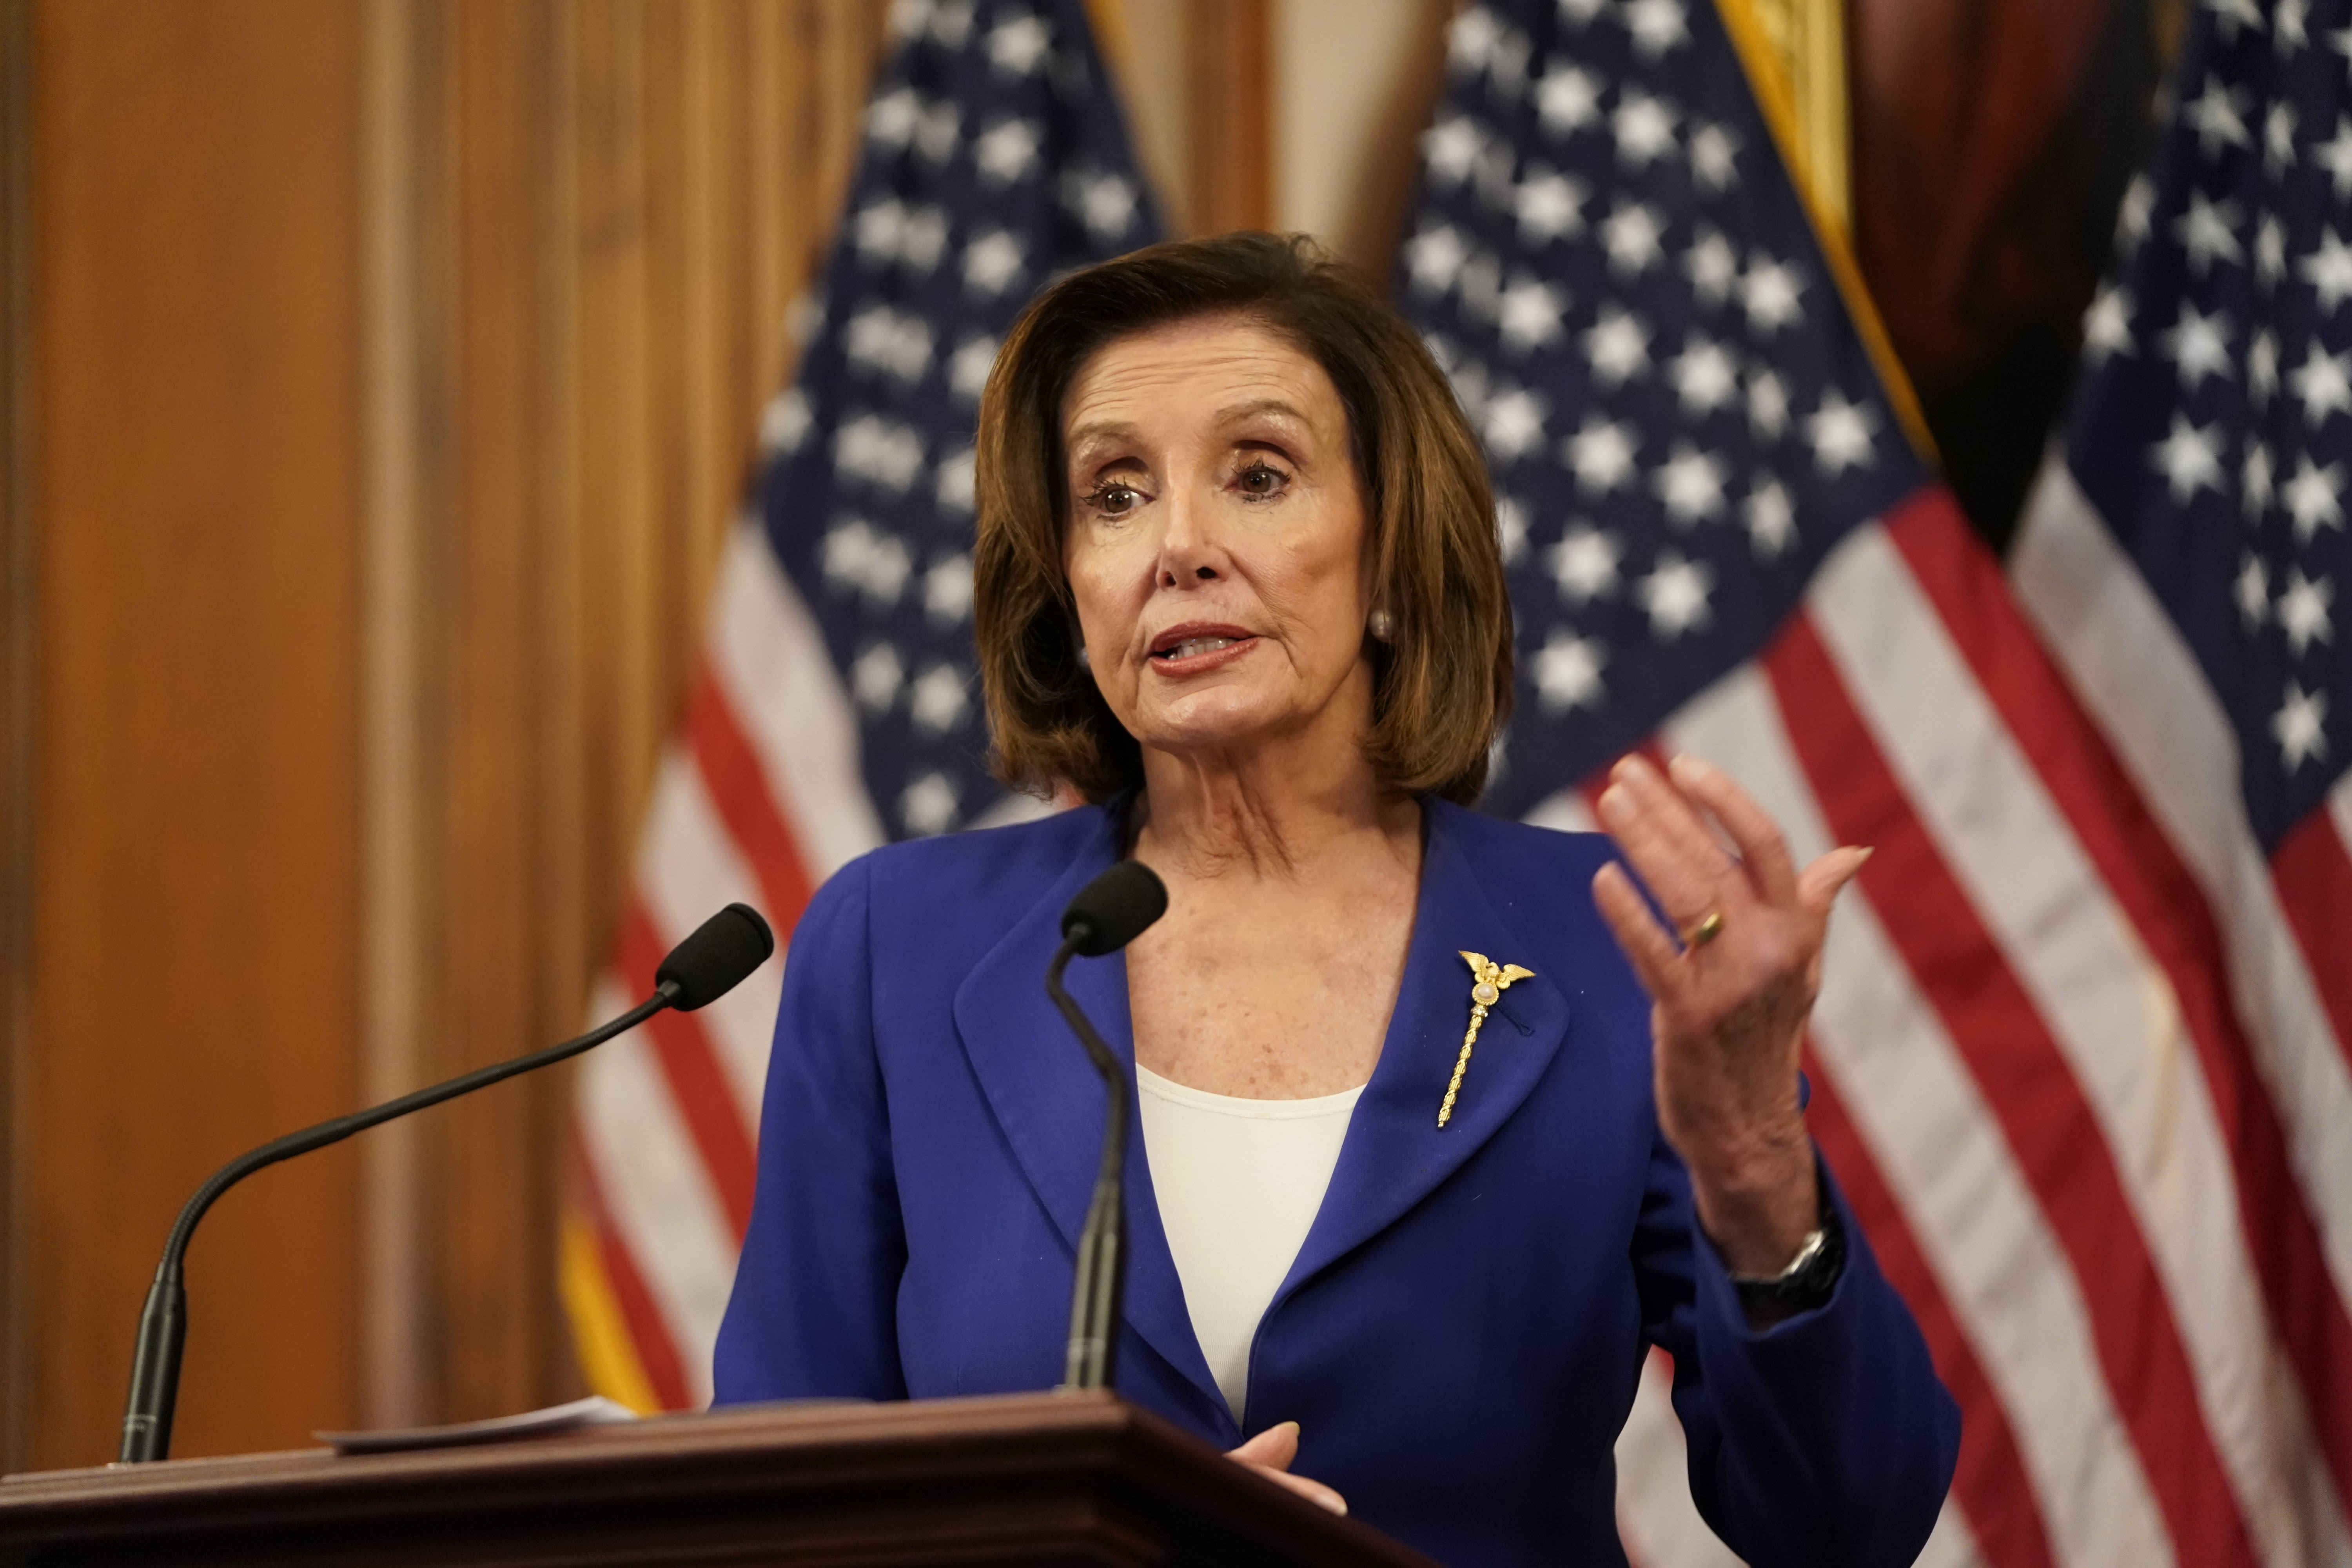 House Speaker Nancy Pelosi says the country must move toward vote by mail, setting up a fight with Trump